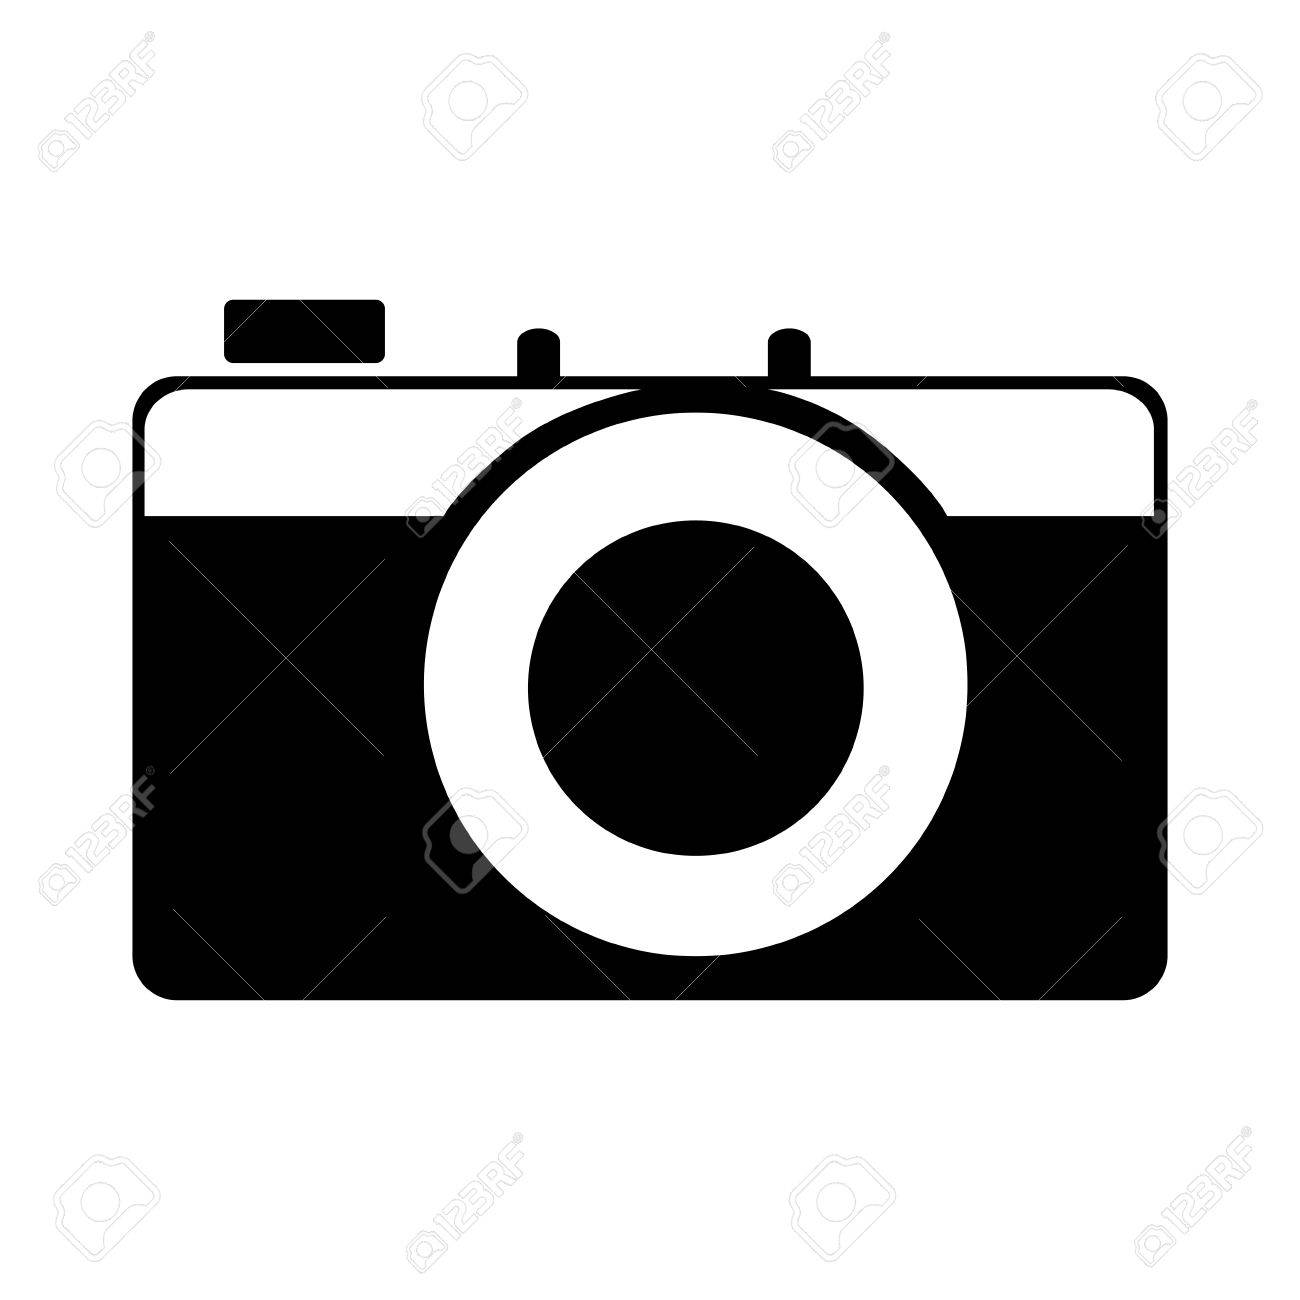 Vintage Photographic Camera Isolated Flat Icon Cartoon Royalty